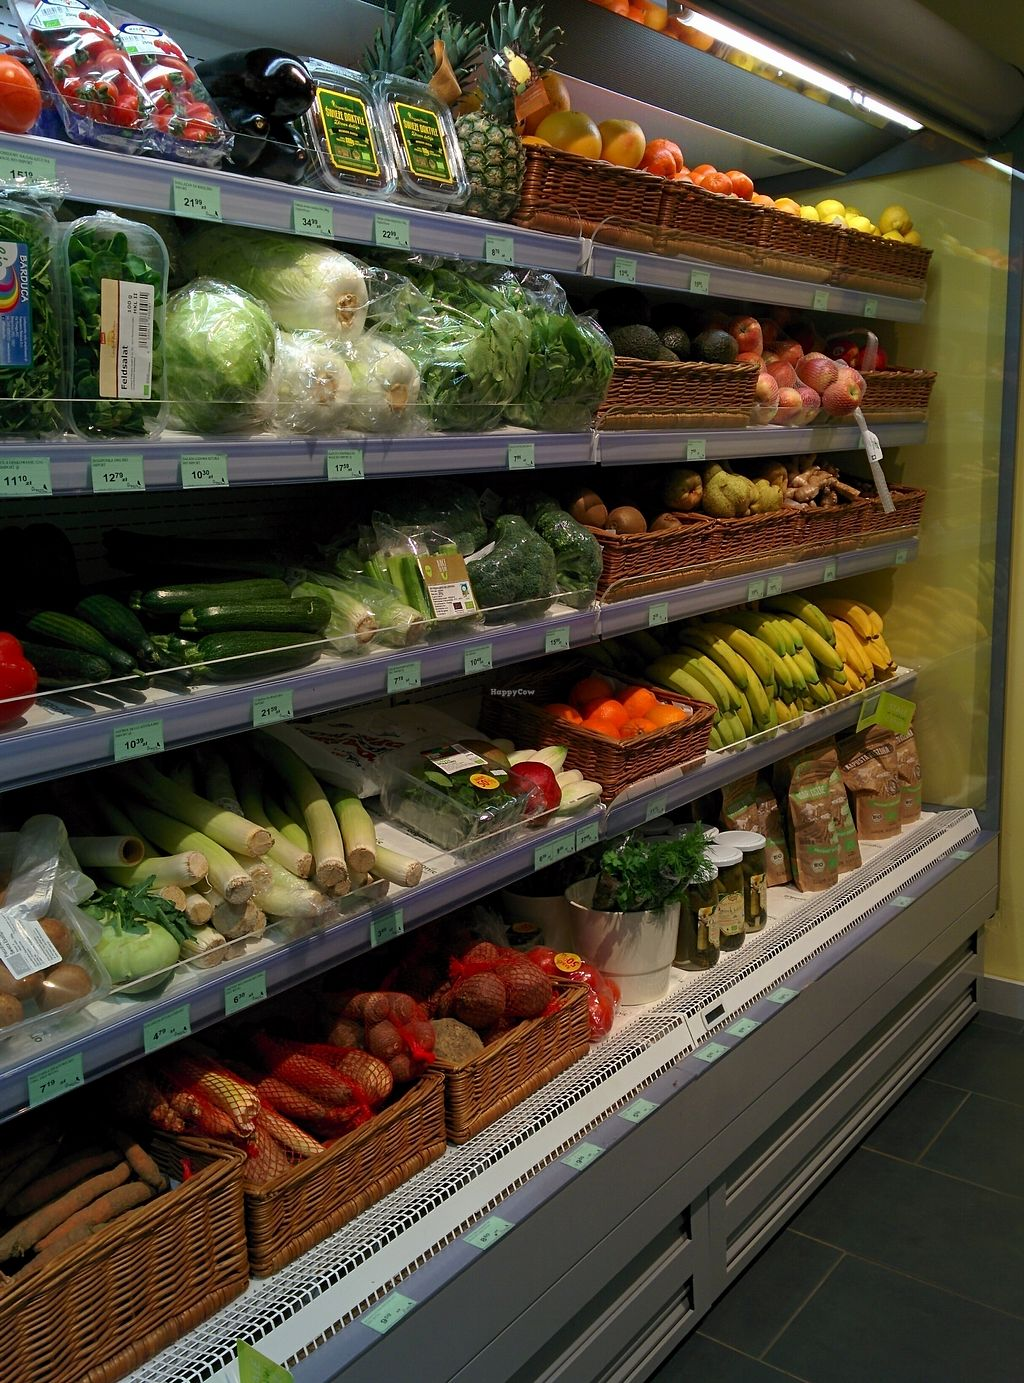 """Photo of Organic Farma Zdrowia  by <a href=""""/members/profile/CLRtraveller"""">CLRtraveller</a> <br/>fresh produce <br/> February 24, 2018  - <a href='/contact/abuse/image/27726/363137'>Report</a>"""